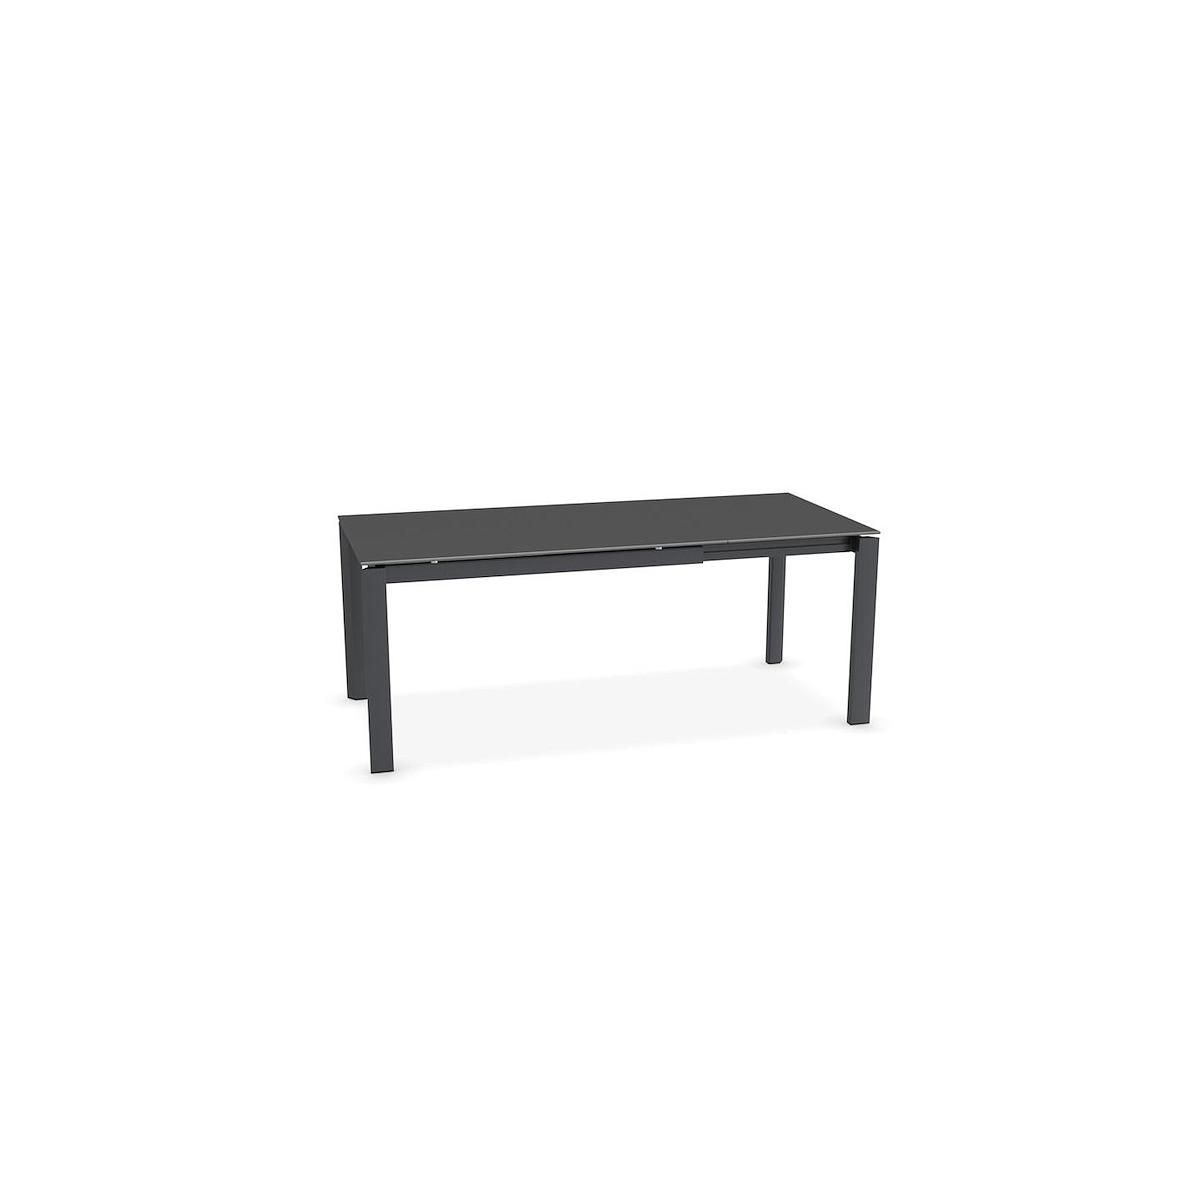 Table rectangulaire extensible DUCA Calligaris céramique-verre pierre